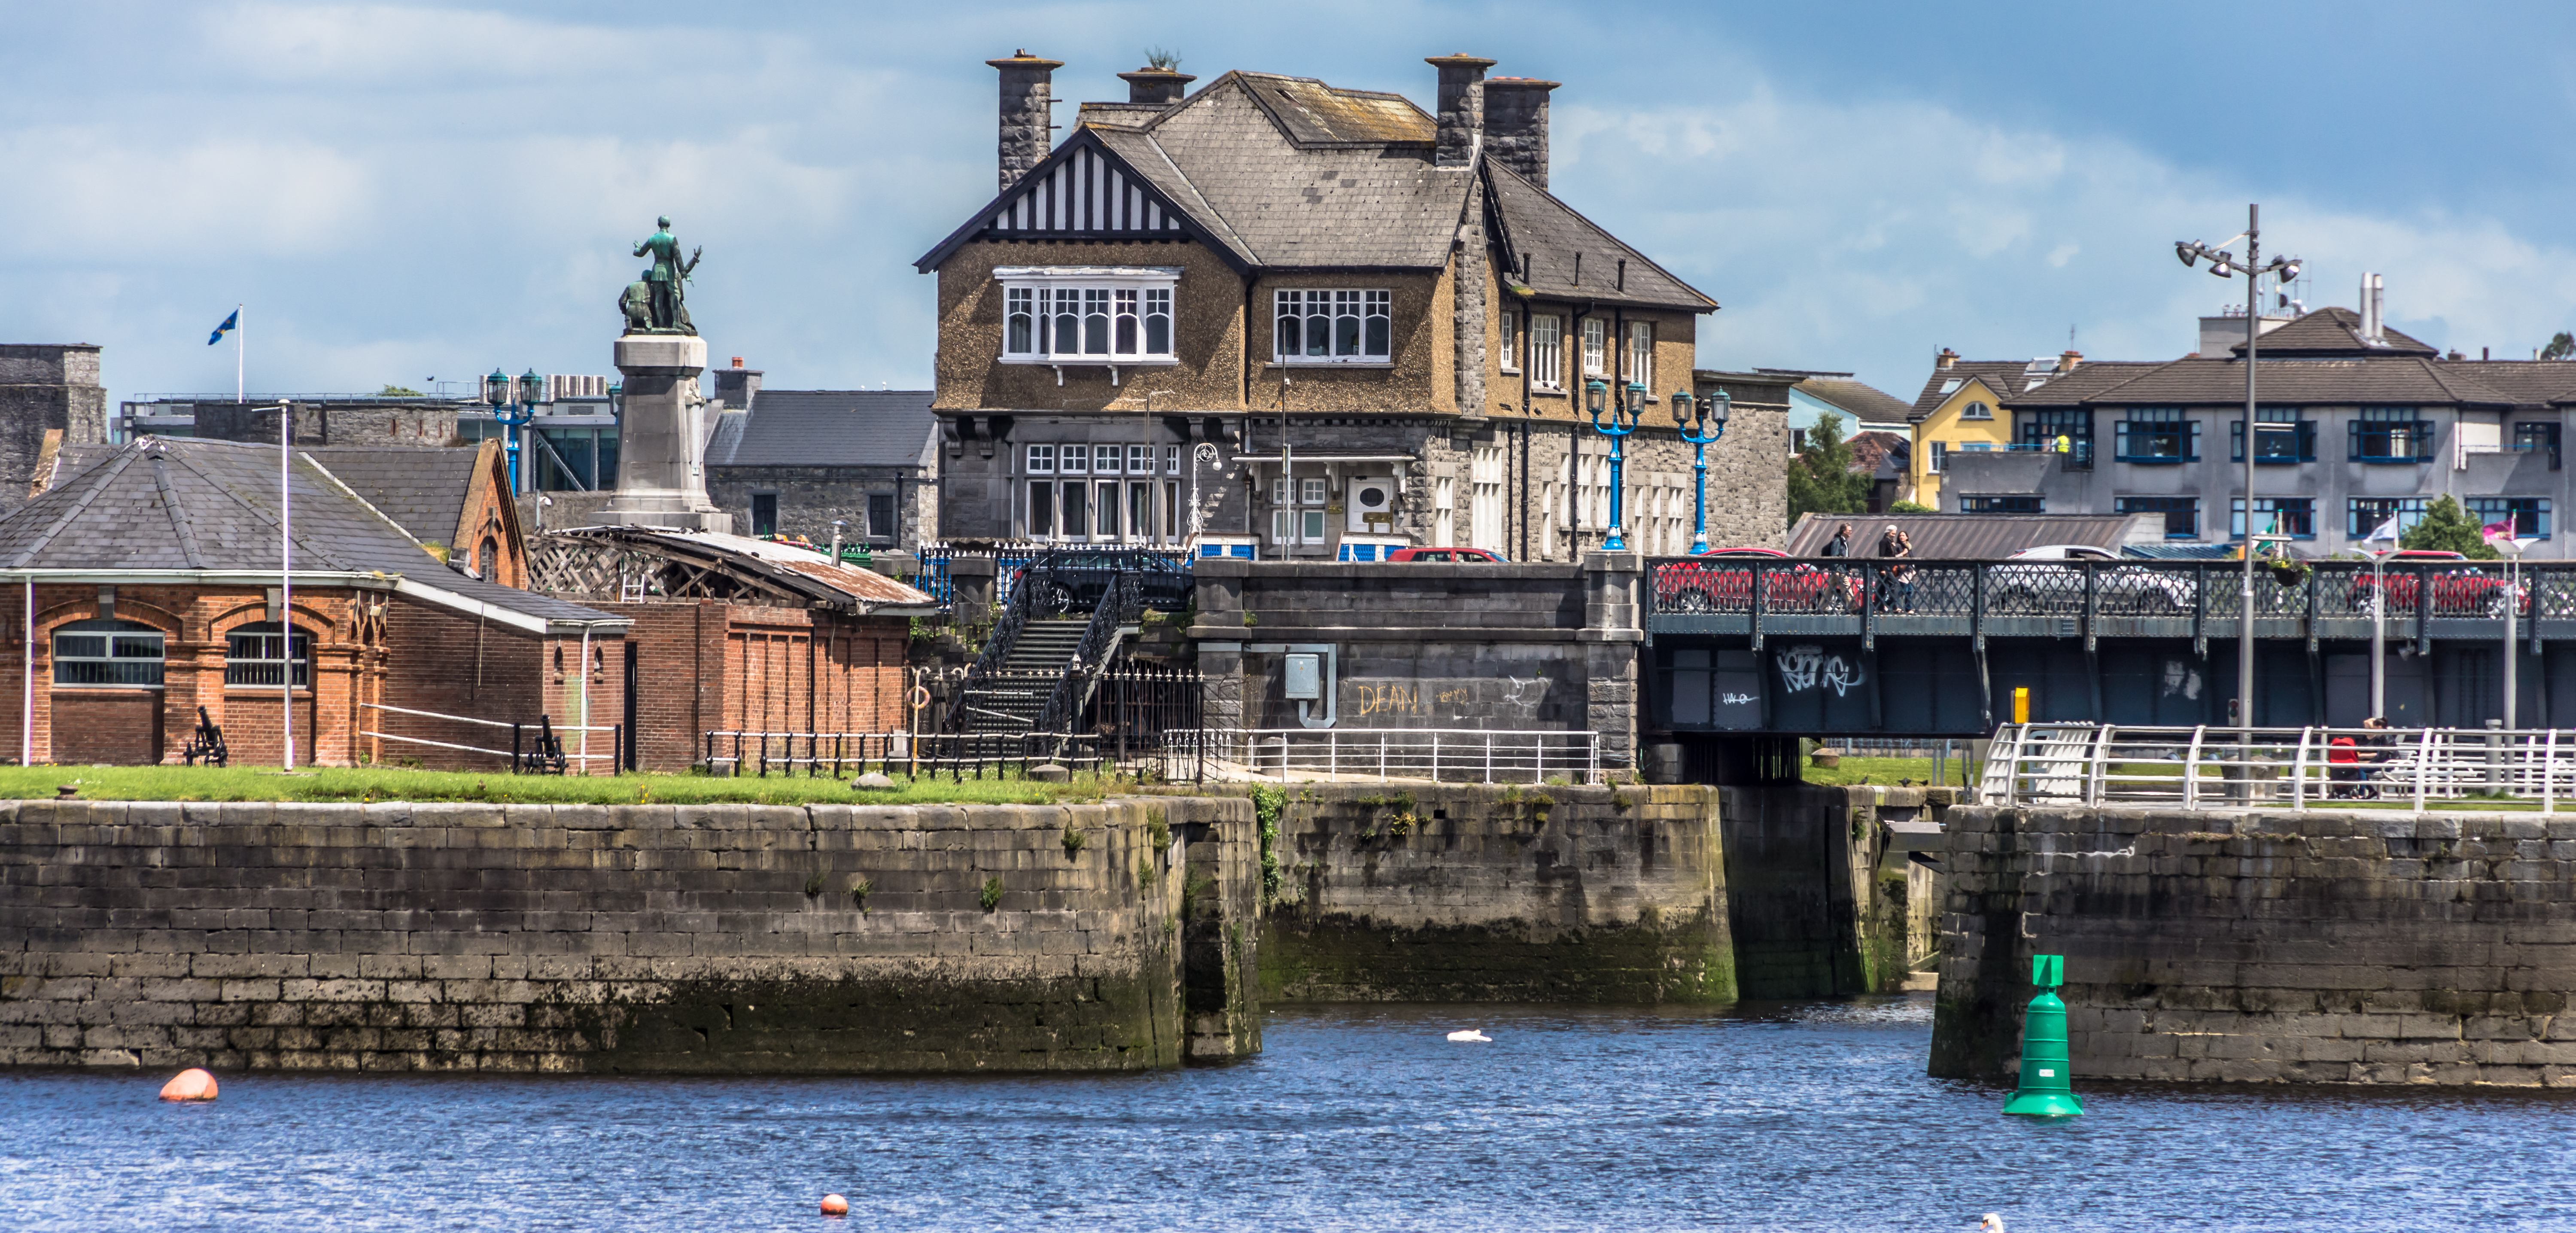 Taking a trip to Limerick is an awesome thing to do in Ireland